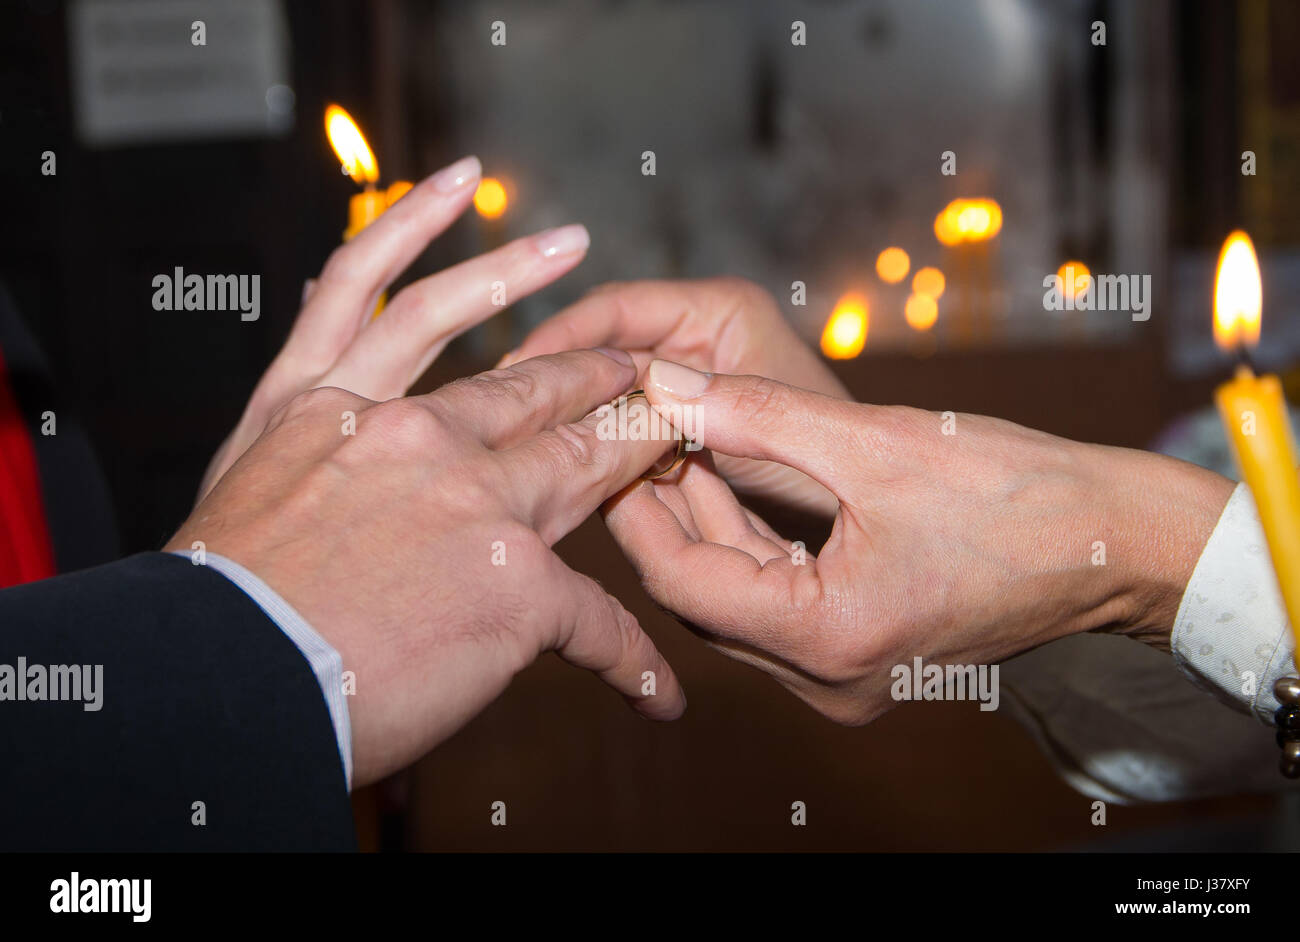 Ritual placement of wedding rings in a Christian church - Stock Image